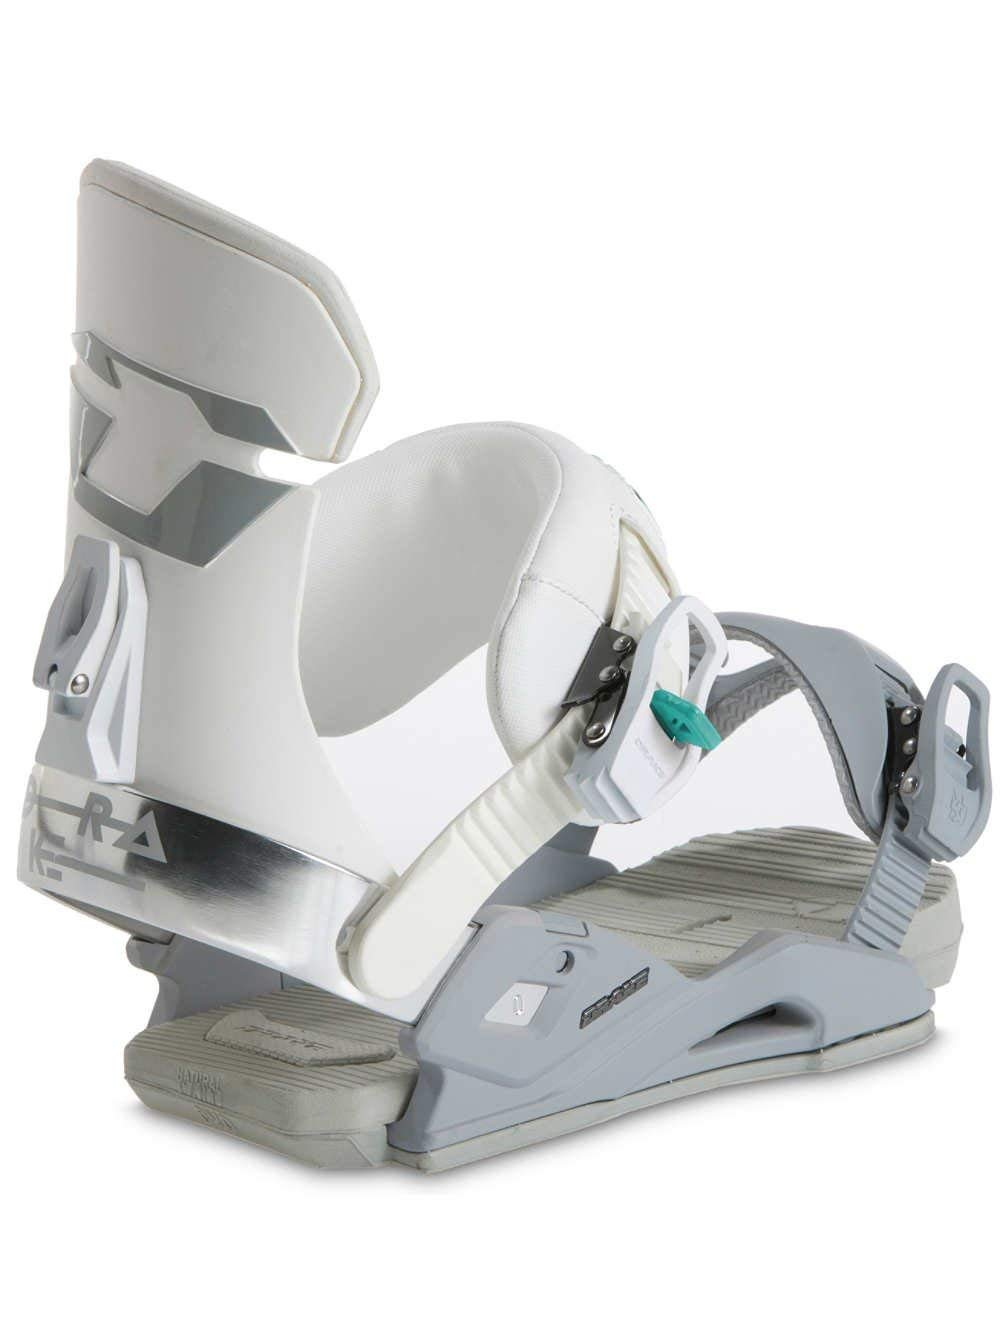 0587a1aff33 Get Quotations · Drake Women s Snowboard bindings DL white